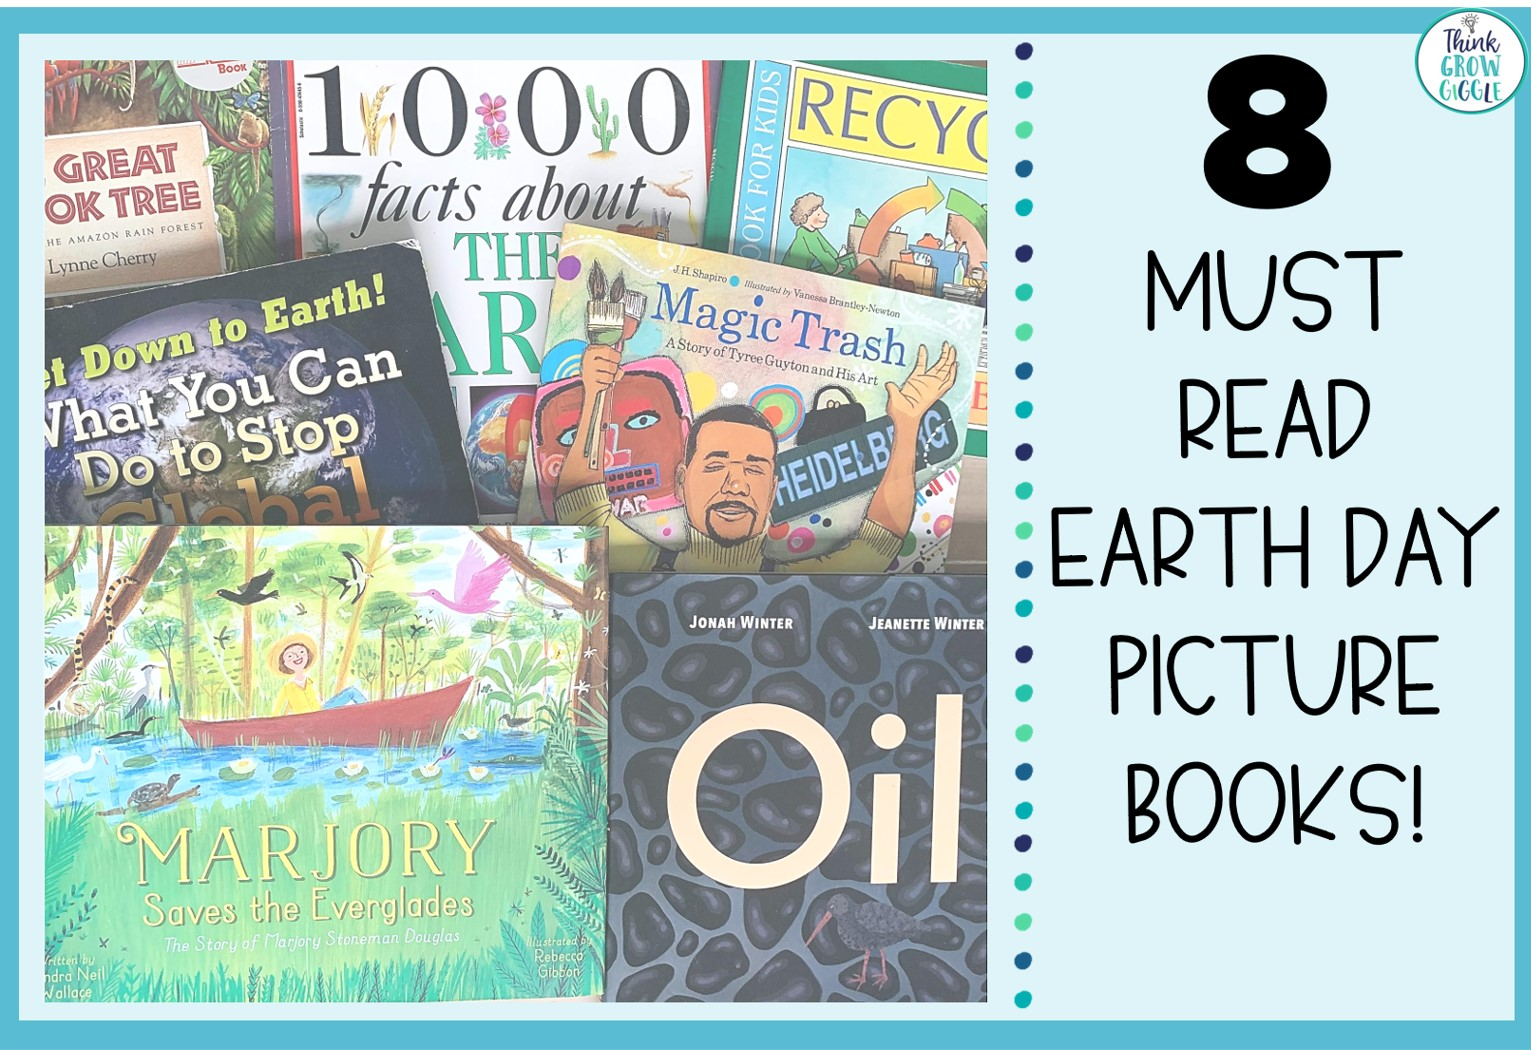 8 Earth Day Picture Books for Upper Elementary